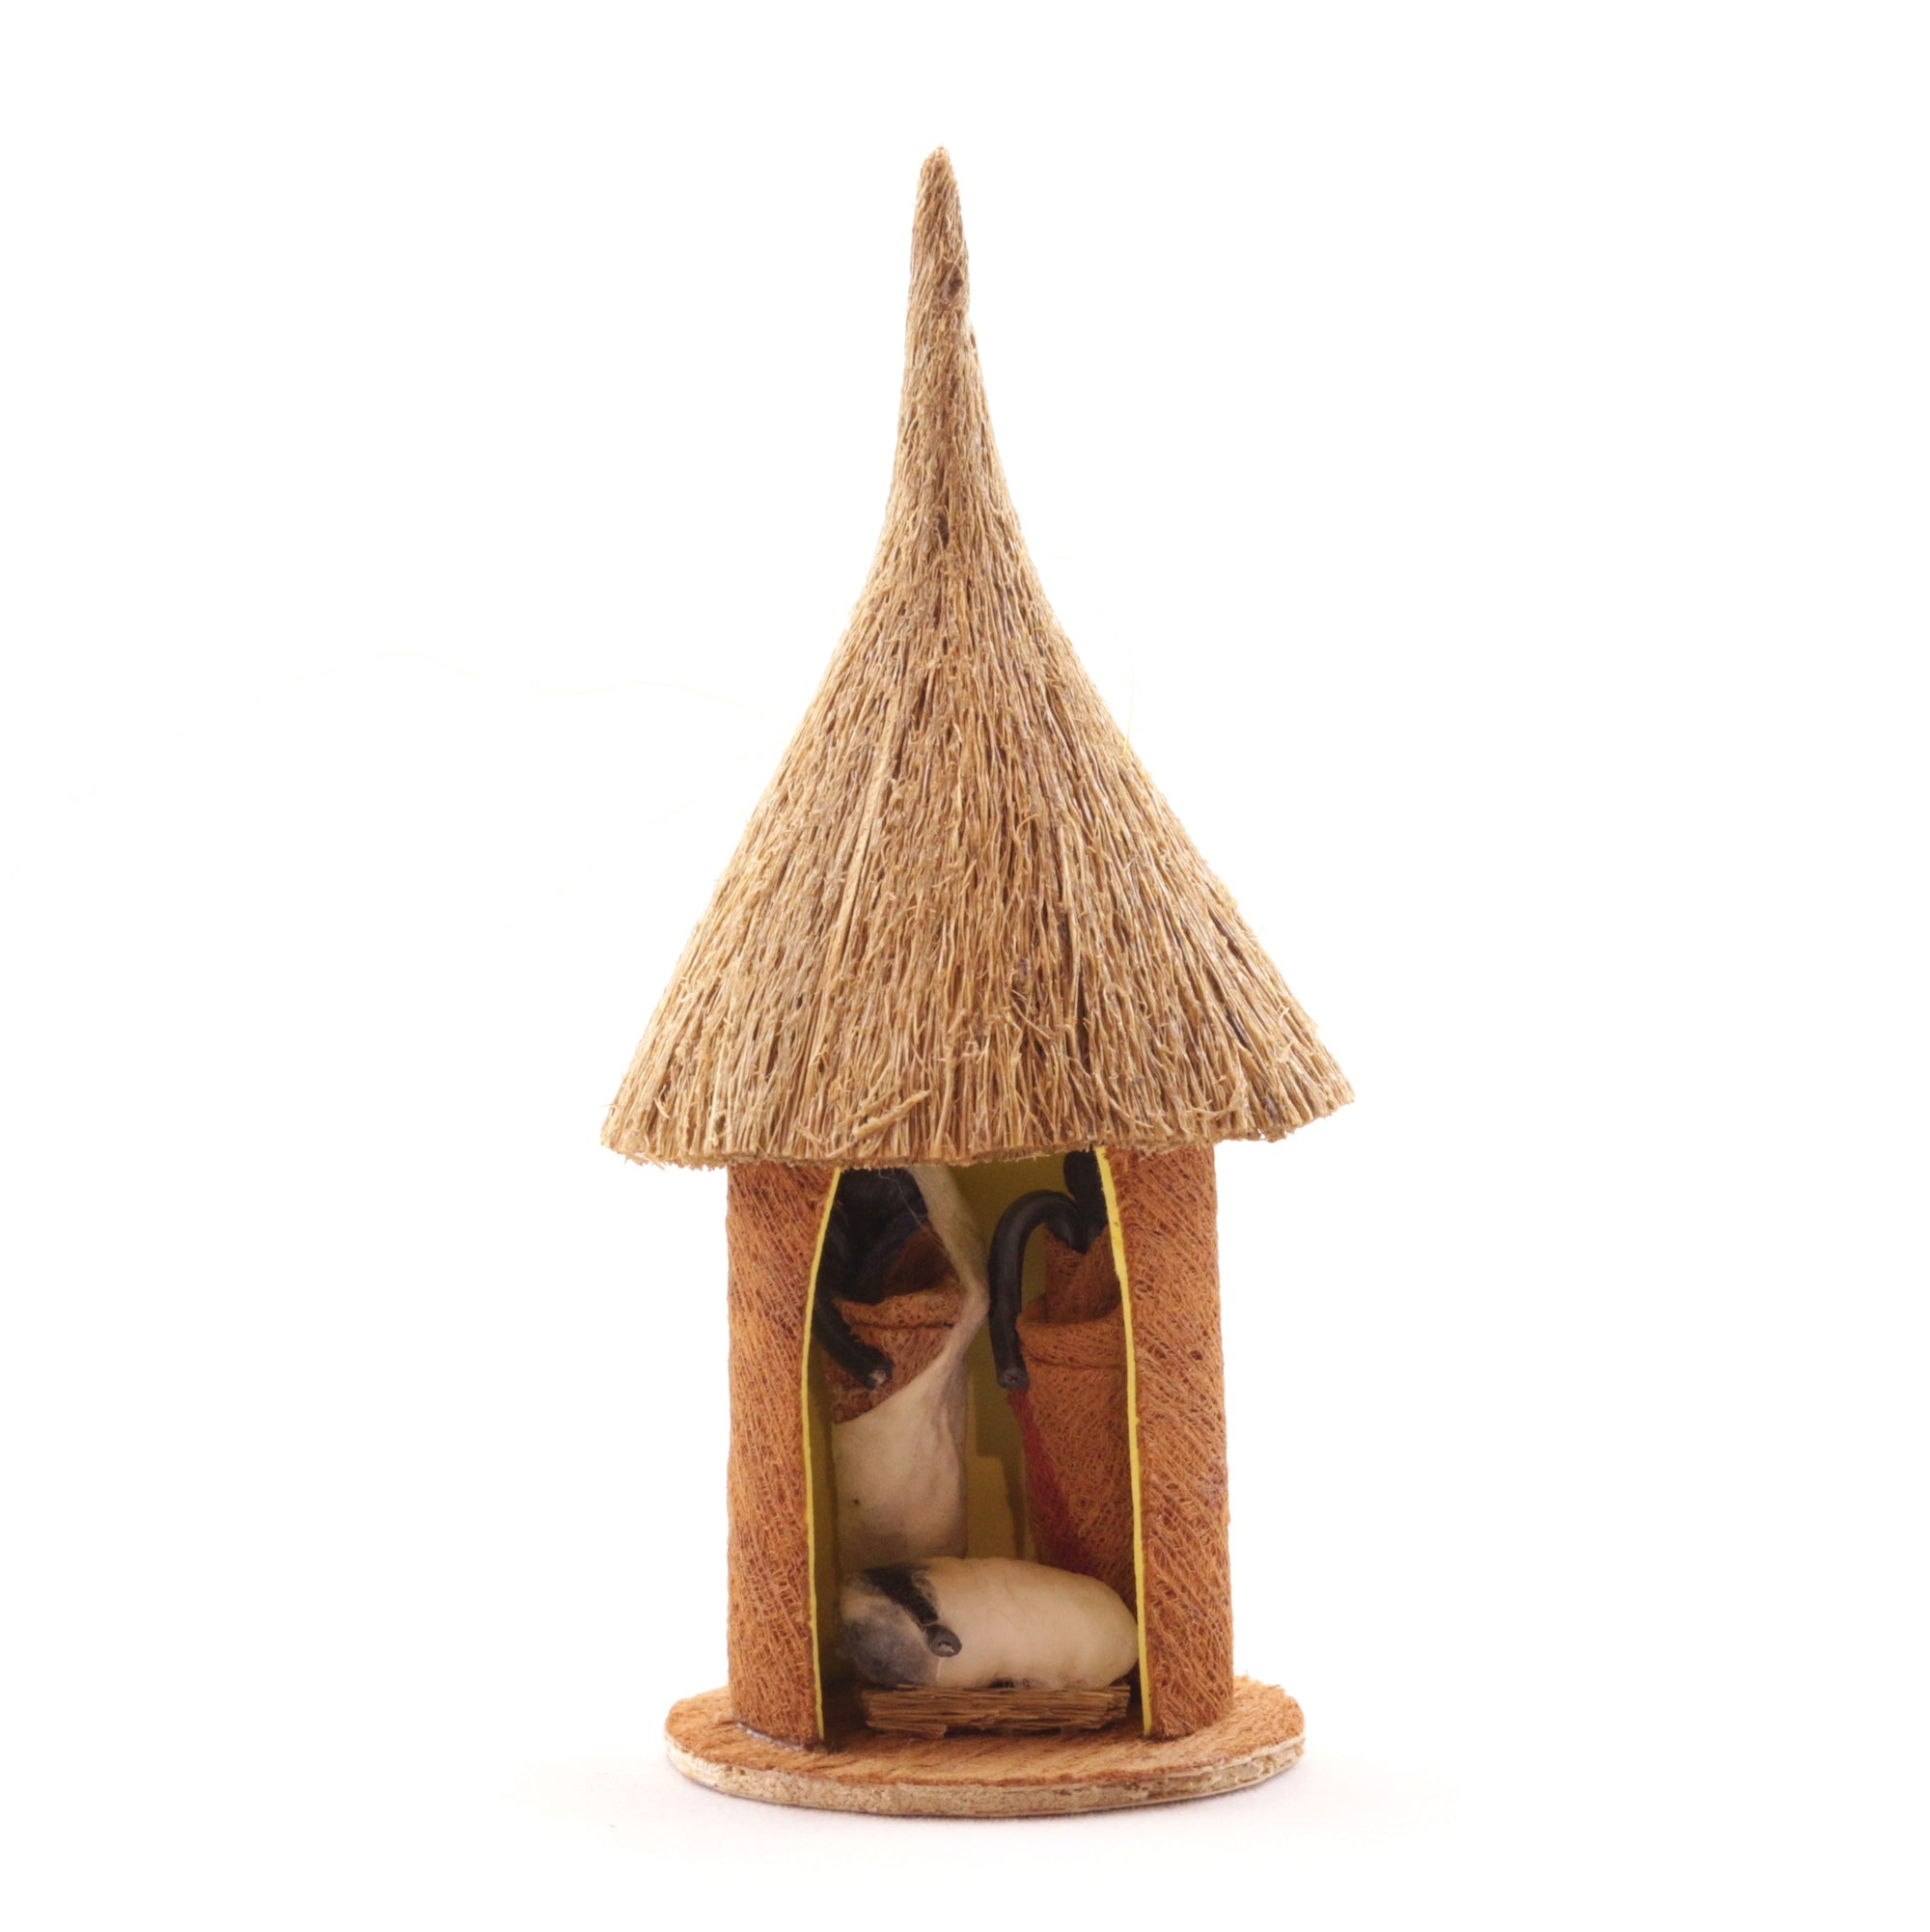 Bark Cloth Hut Ornament - Nativity